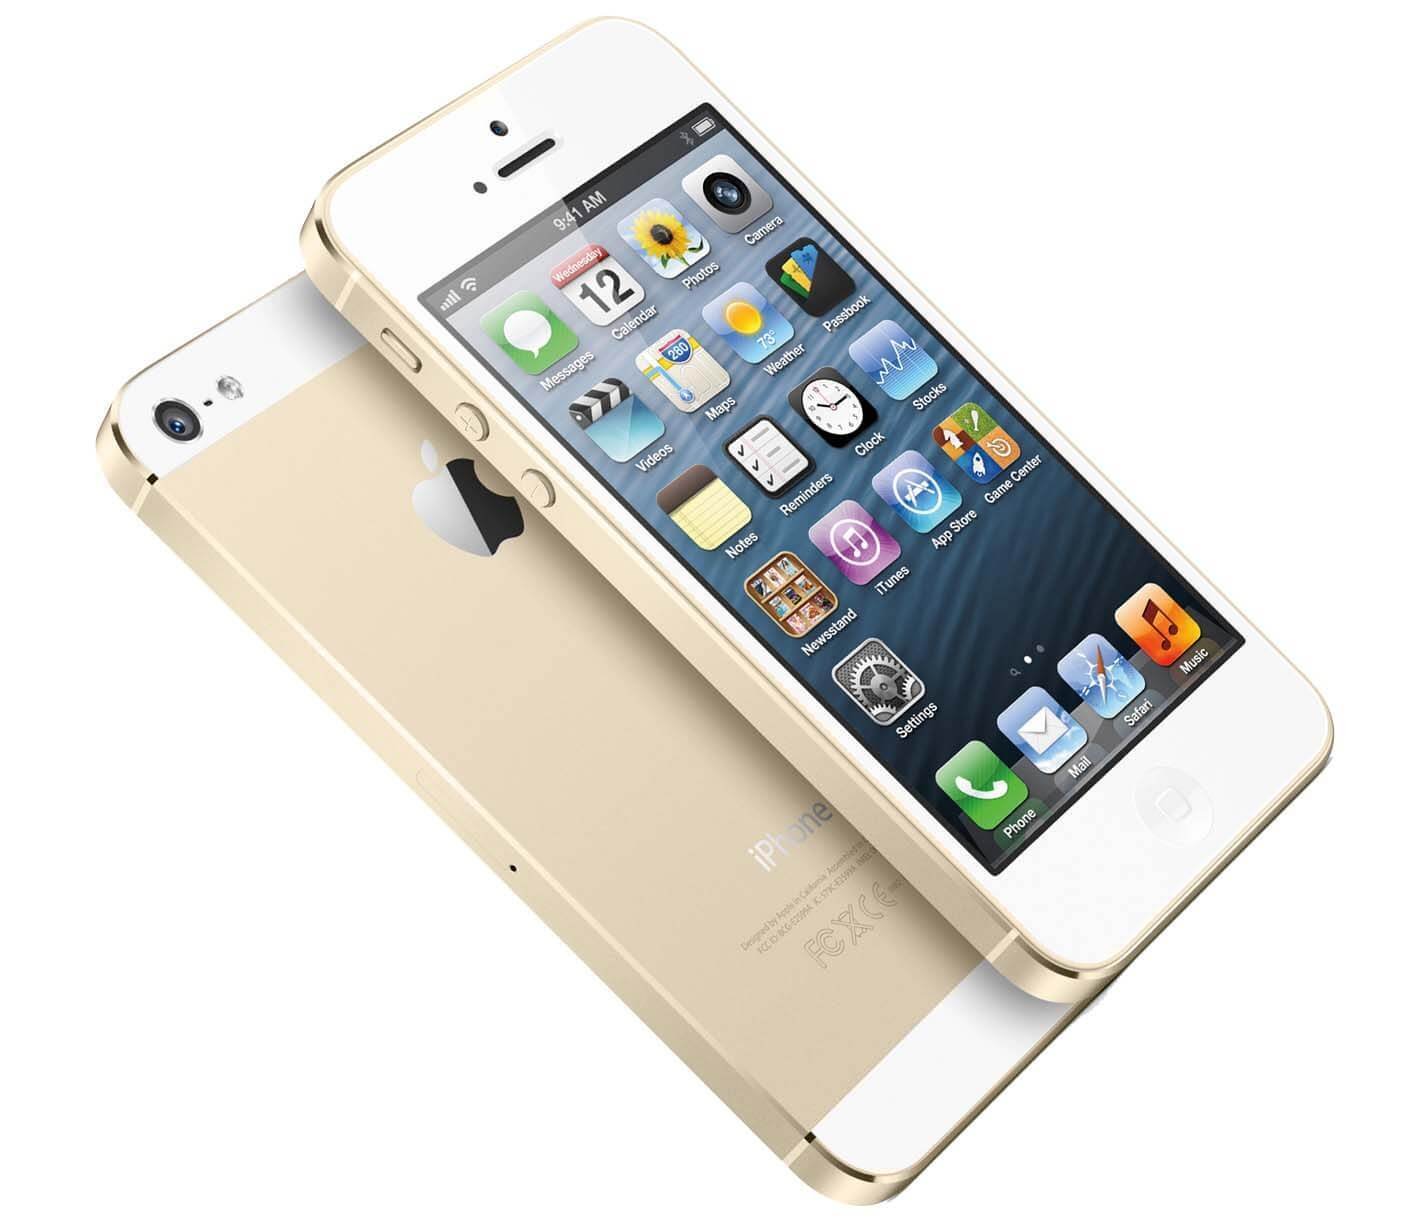 Image Result For Iphone Model A